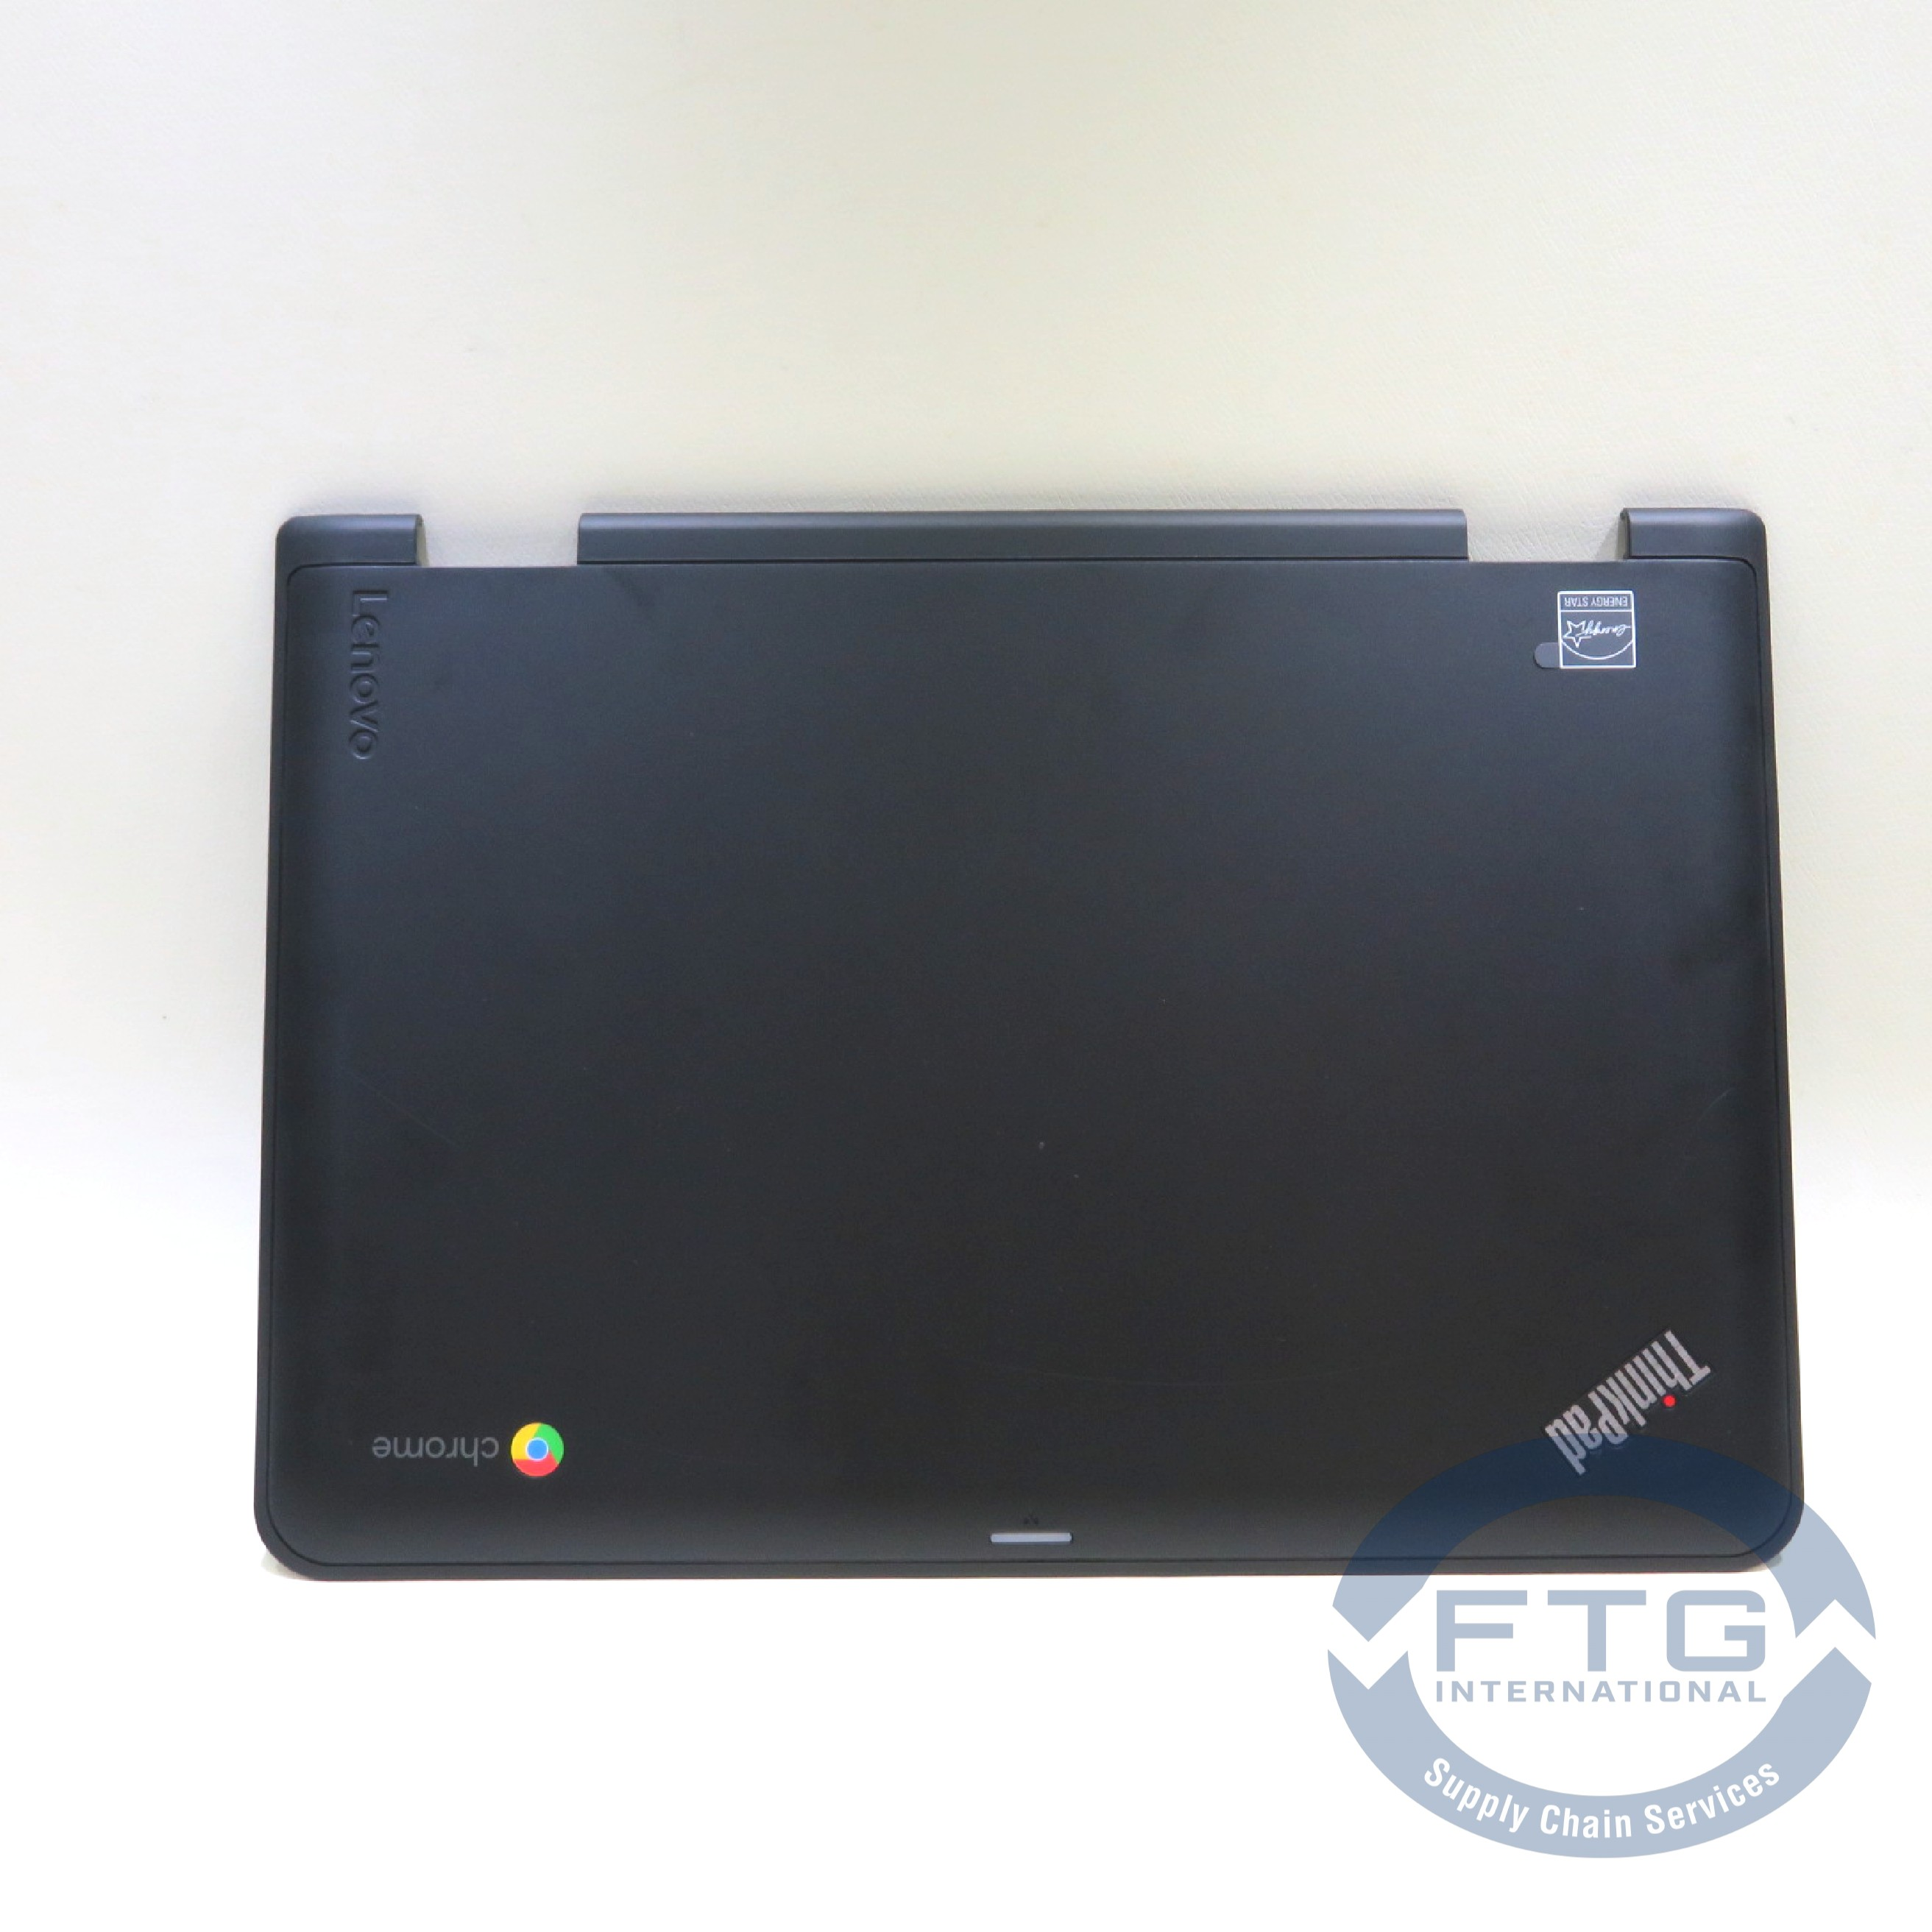 01AV974 D1 A COVER TS CHROME BLK W// CABLE AND ANTENNA MINOR SCRATCHES